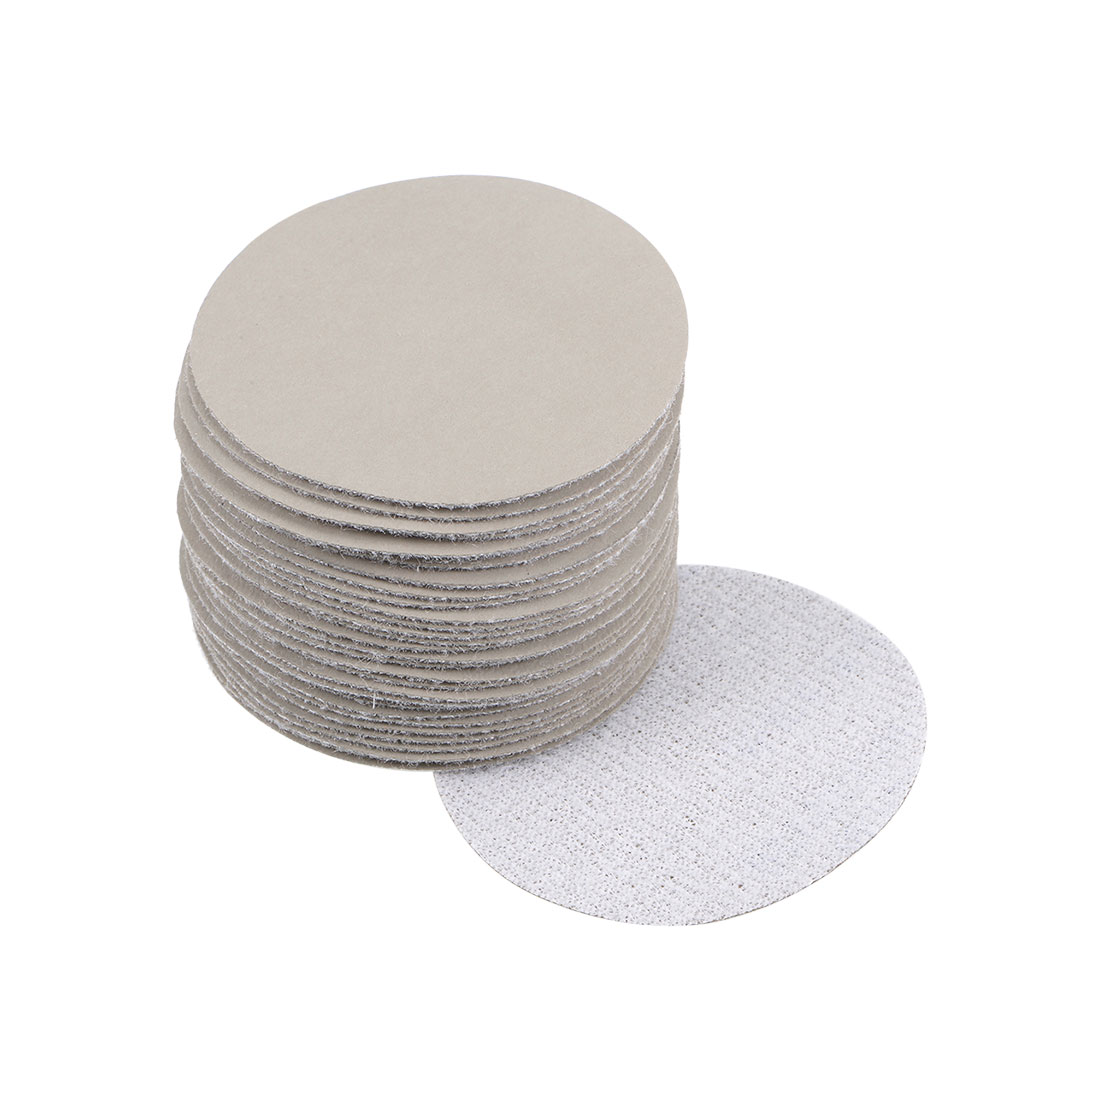 2 inch Wet Dry Discs 4000 Grit Hook and Loop Sanding Disc Silicon Carbide 30pcs